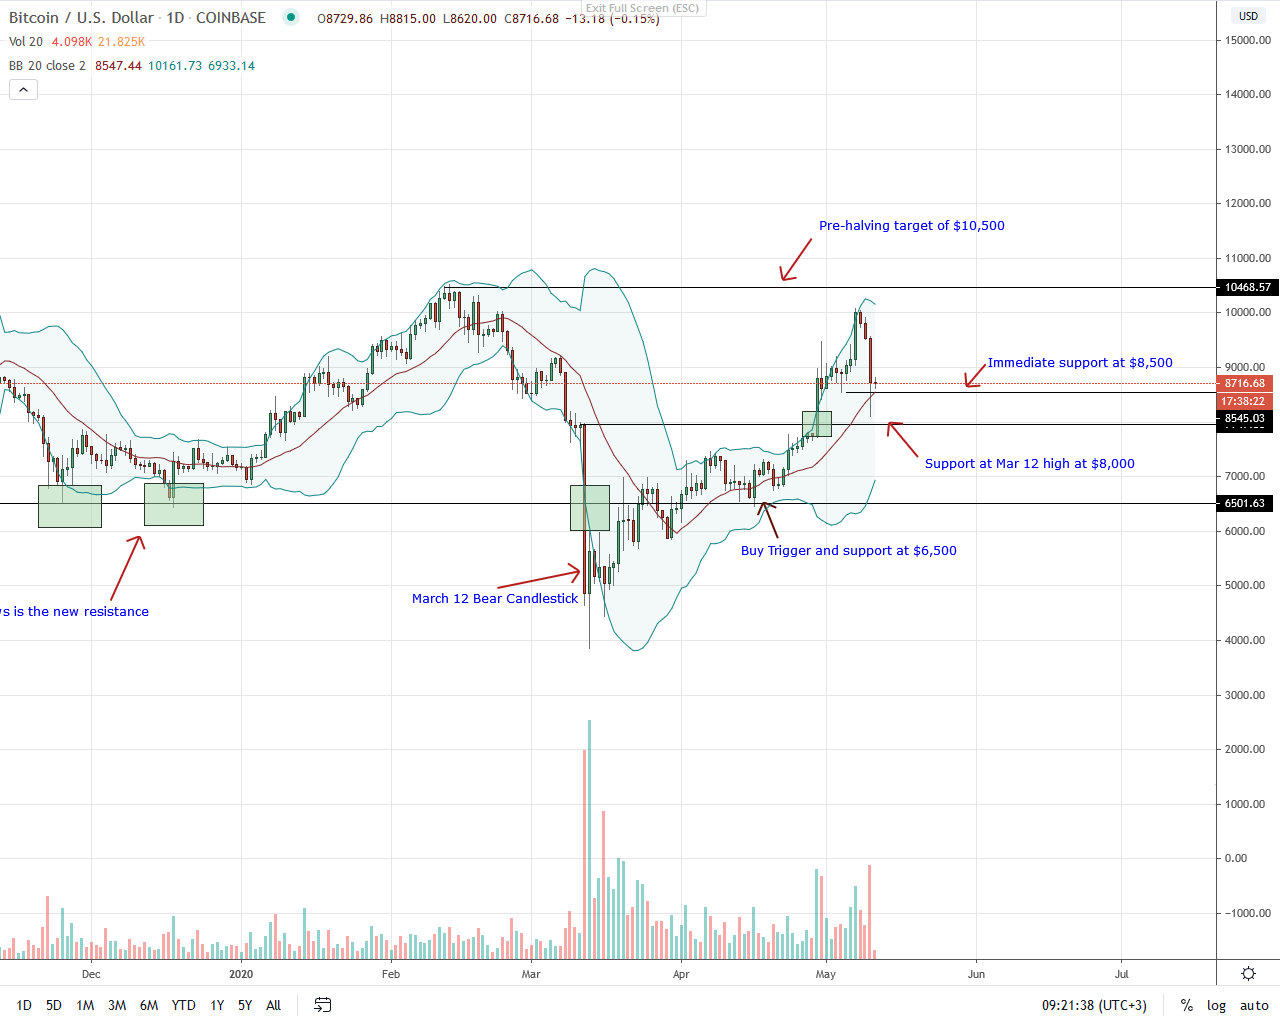 Bitcoin Daily Chart for May 11